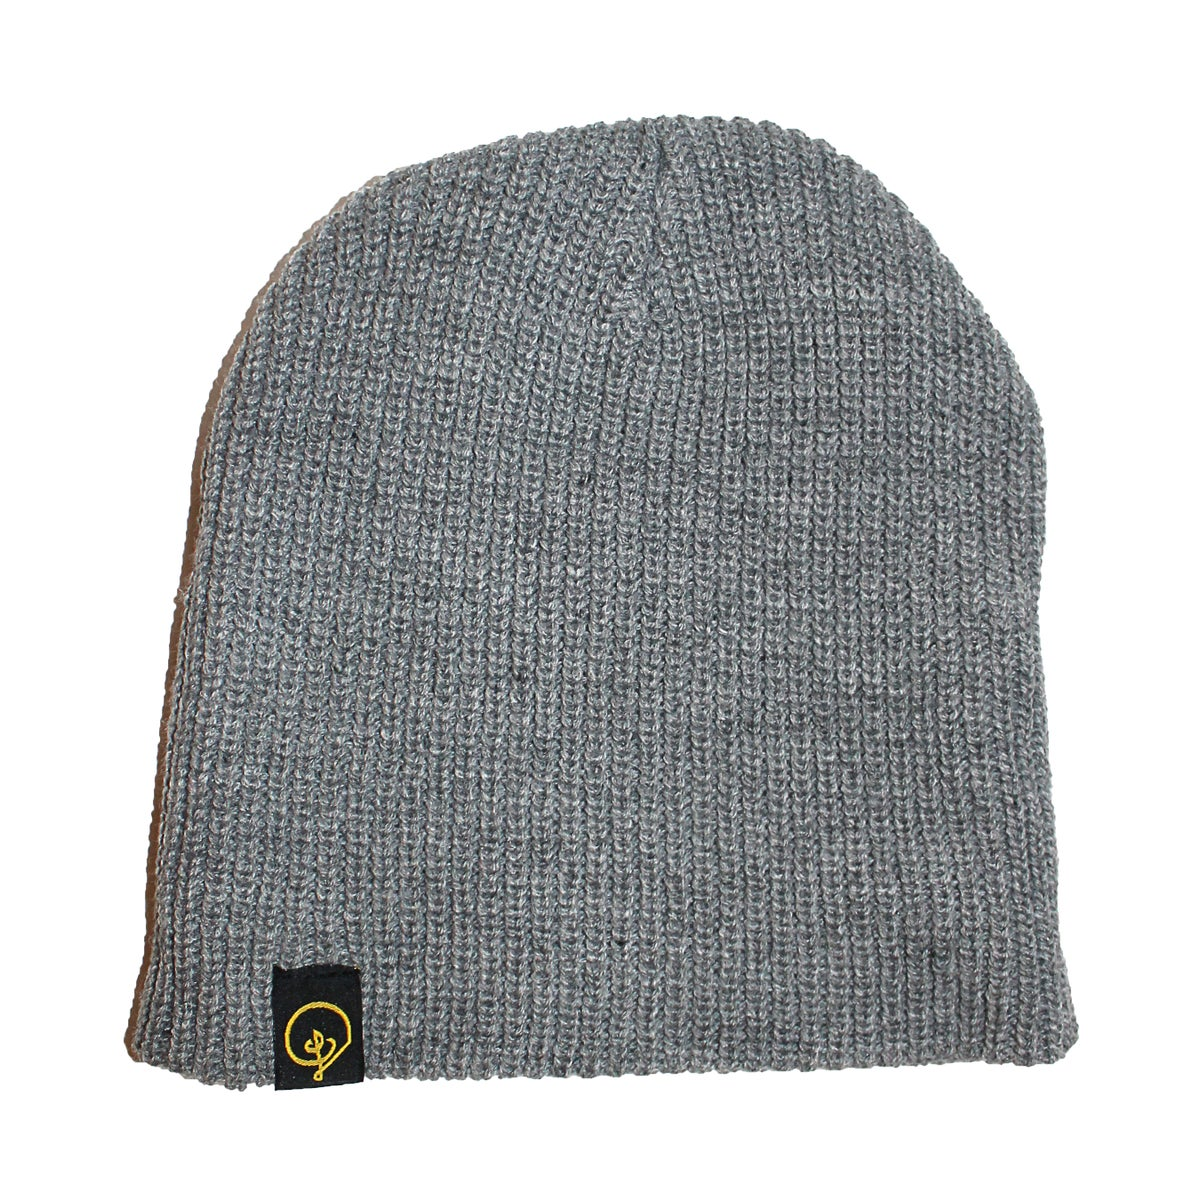 Image of KIDS KNIT BEANIES